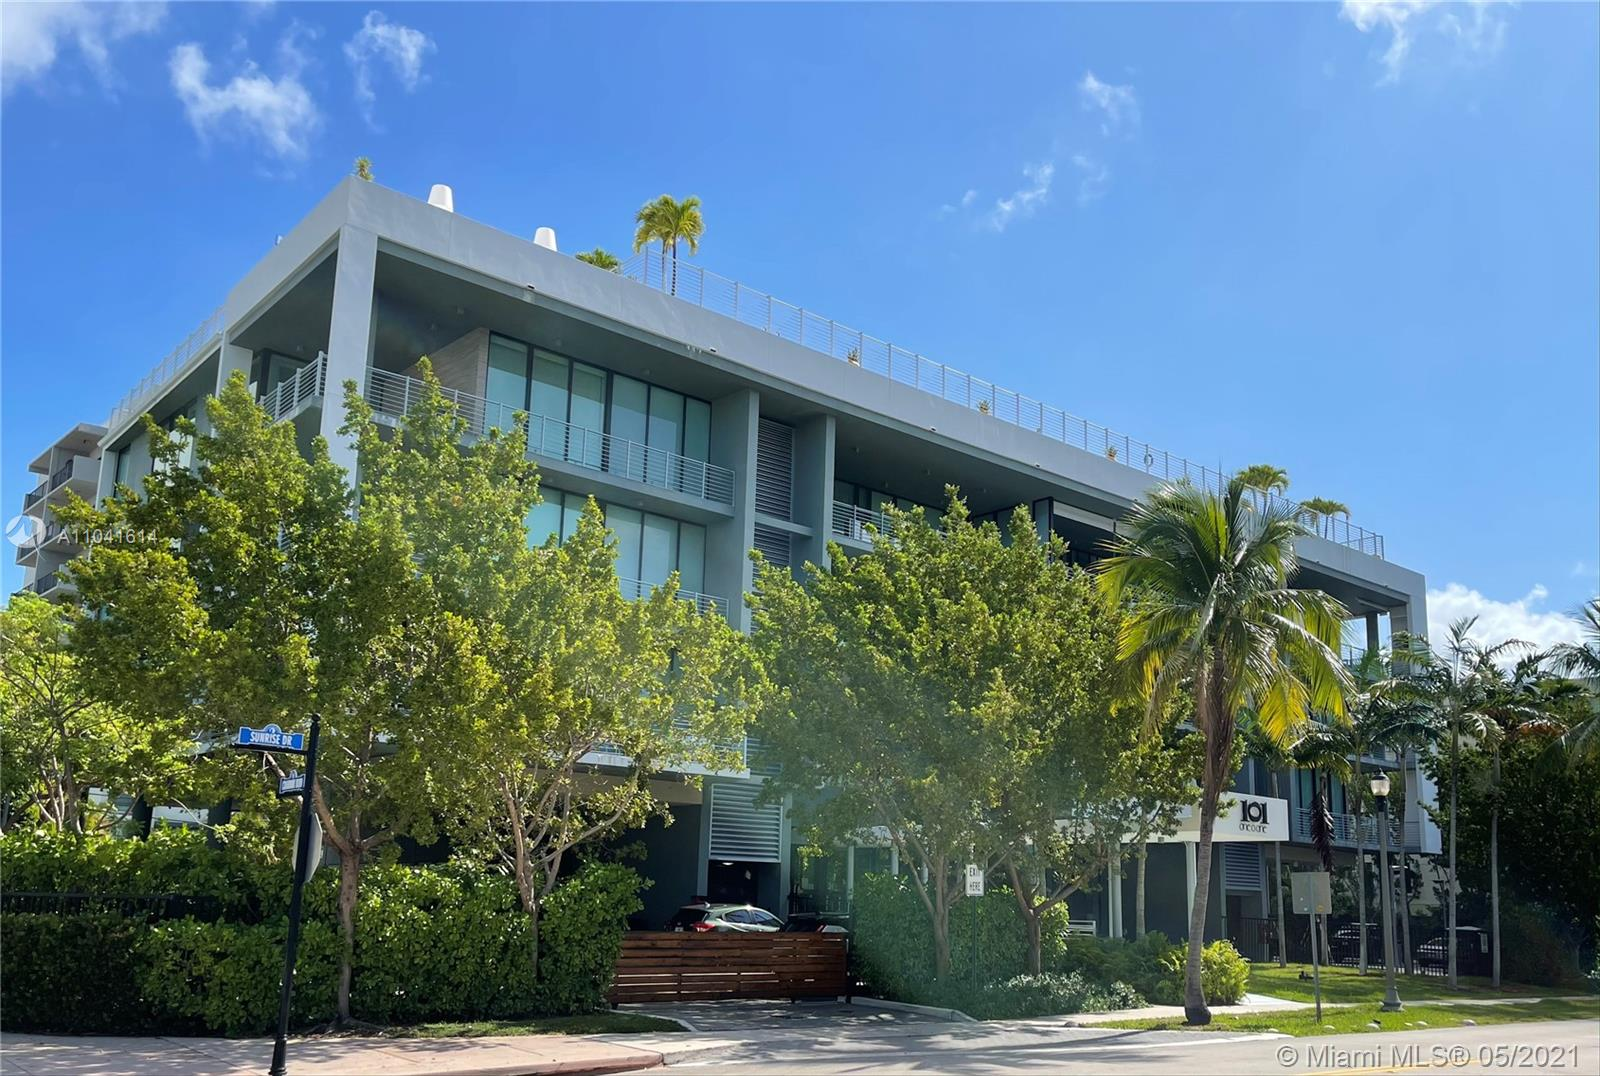 Contemporary urban boutique building in Key Biscayne. This 3br/3.5ba spacious unit features Miele appliances, white quartz countertops, engineered Oak Montachino wood floor, 11ft ceilings throughout, impact windows & doors, ample terraces w/ wet bar and summer kitchen is great for entertaining. Includes 2 parking spaces & storage room. Enjoy state of the art amenities inviting roof top lap pool with 360 views of the ocean and city of Key Biscayne, BBQ, gym and yoga center. Great deck for watching sunsets.  1000 sq ft outdoor space in two exposures.